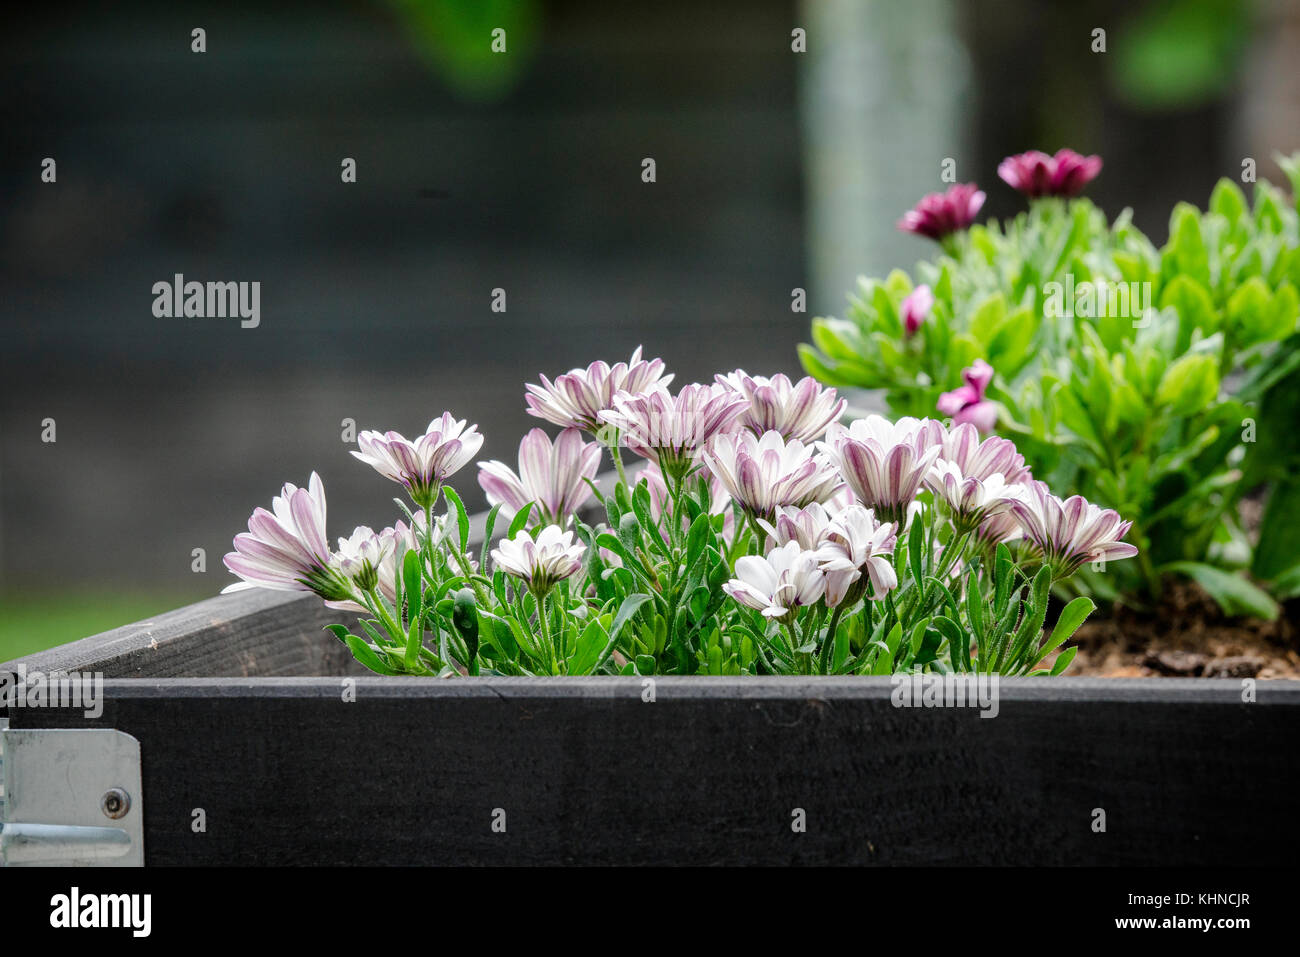 Garden flowers in  black wooden box in the summer looking beautiful with green leaves - Stock Image